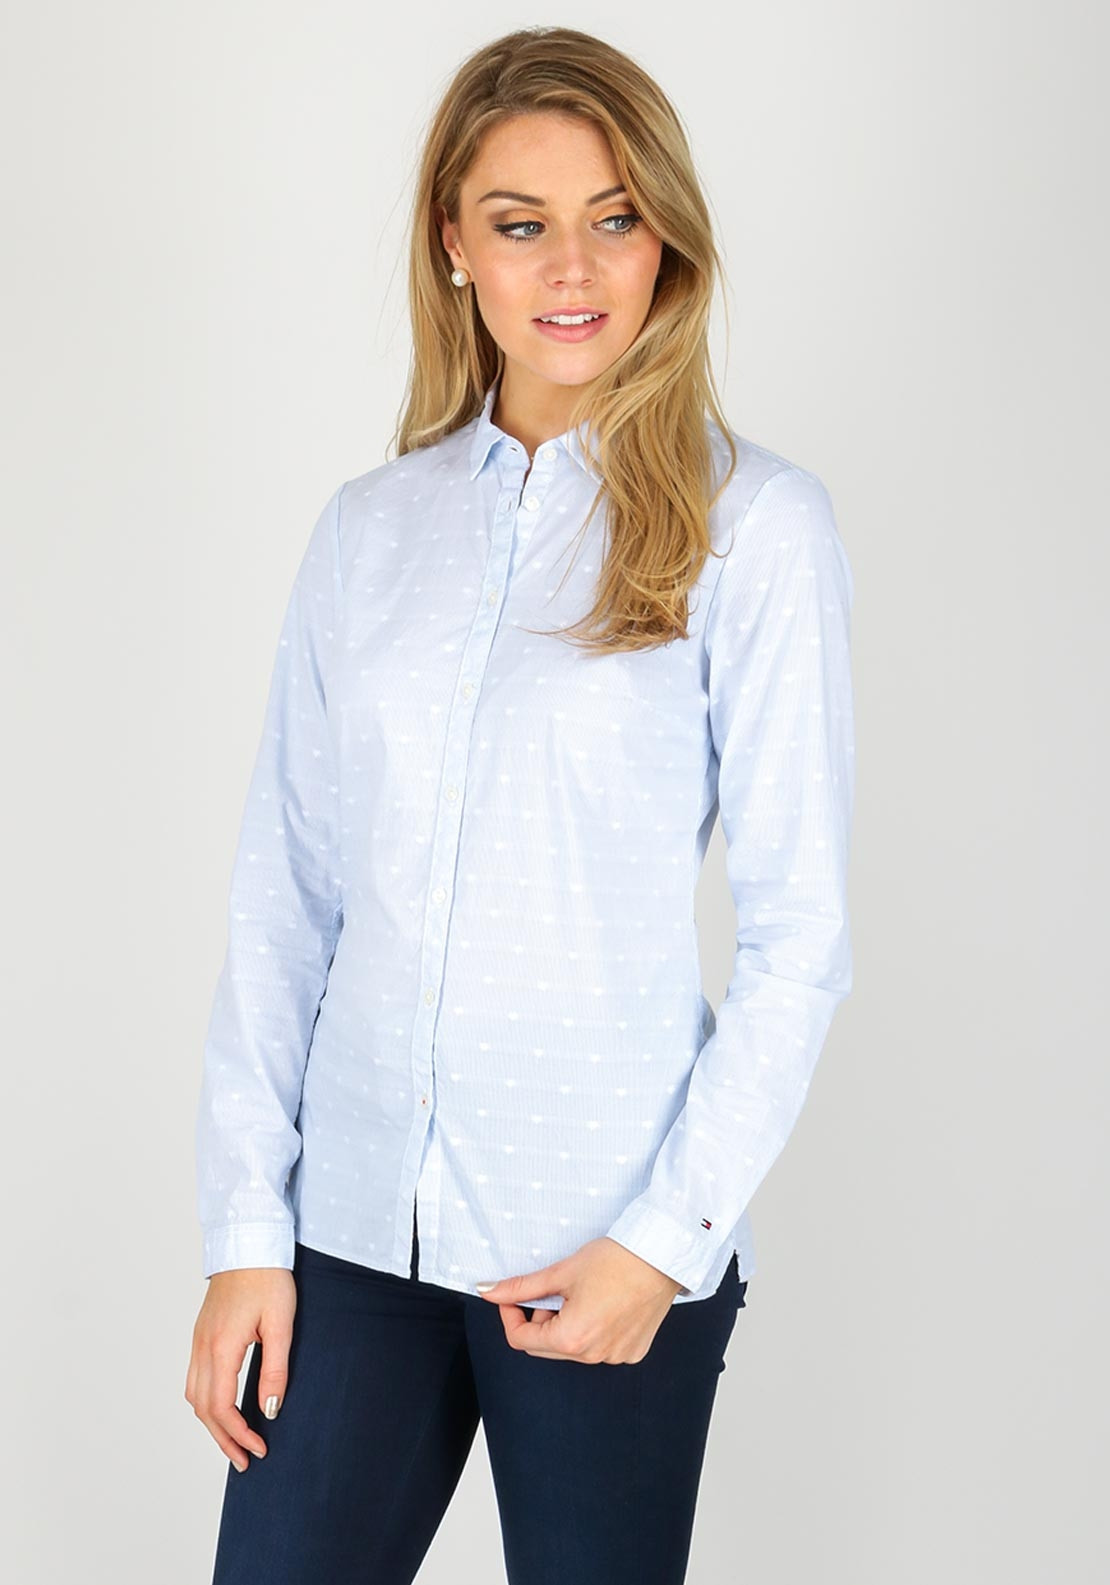 df76b099 Tommy Hilfiger Womens Javana Fitted Shirt, Blue. Be the first to review  this product